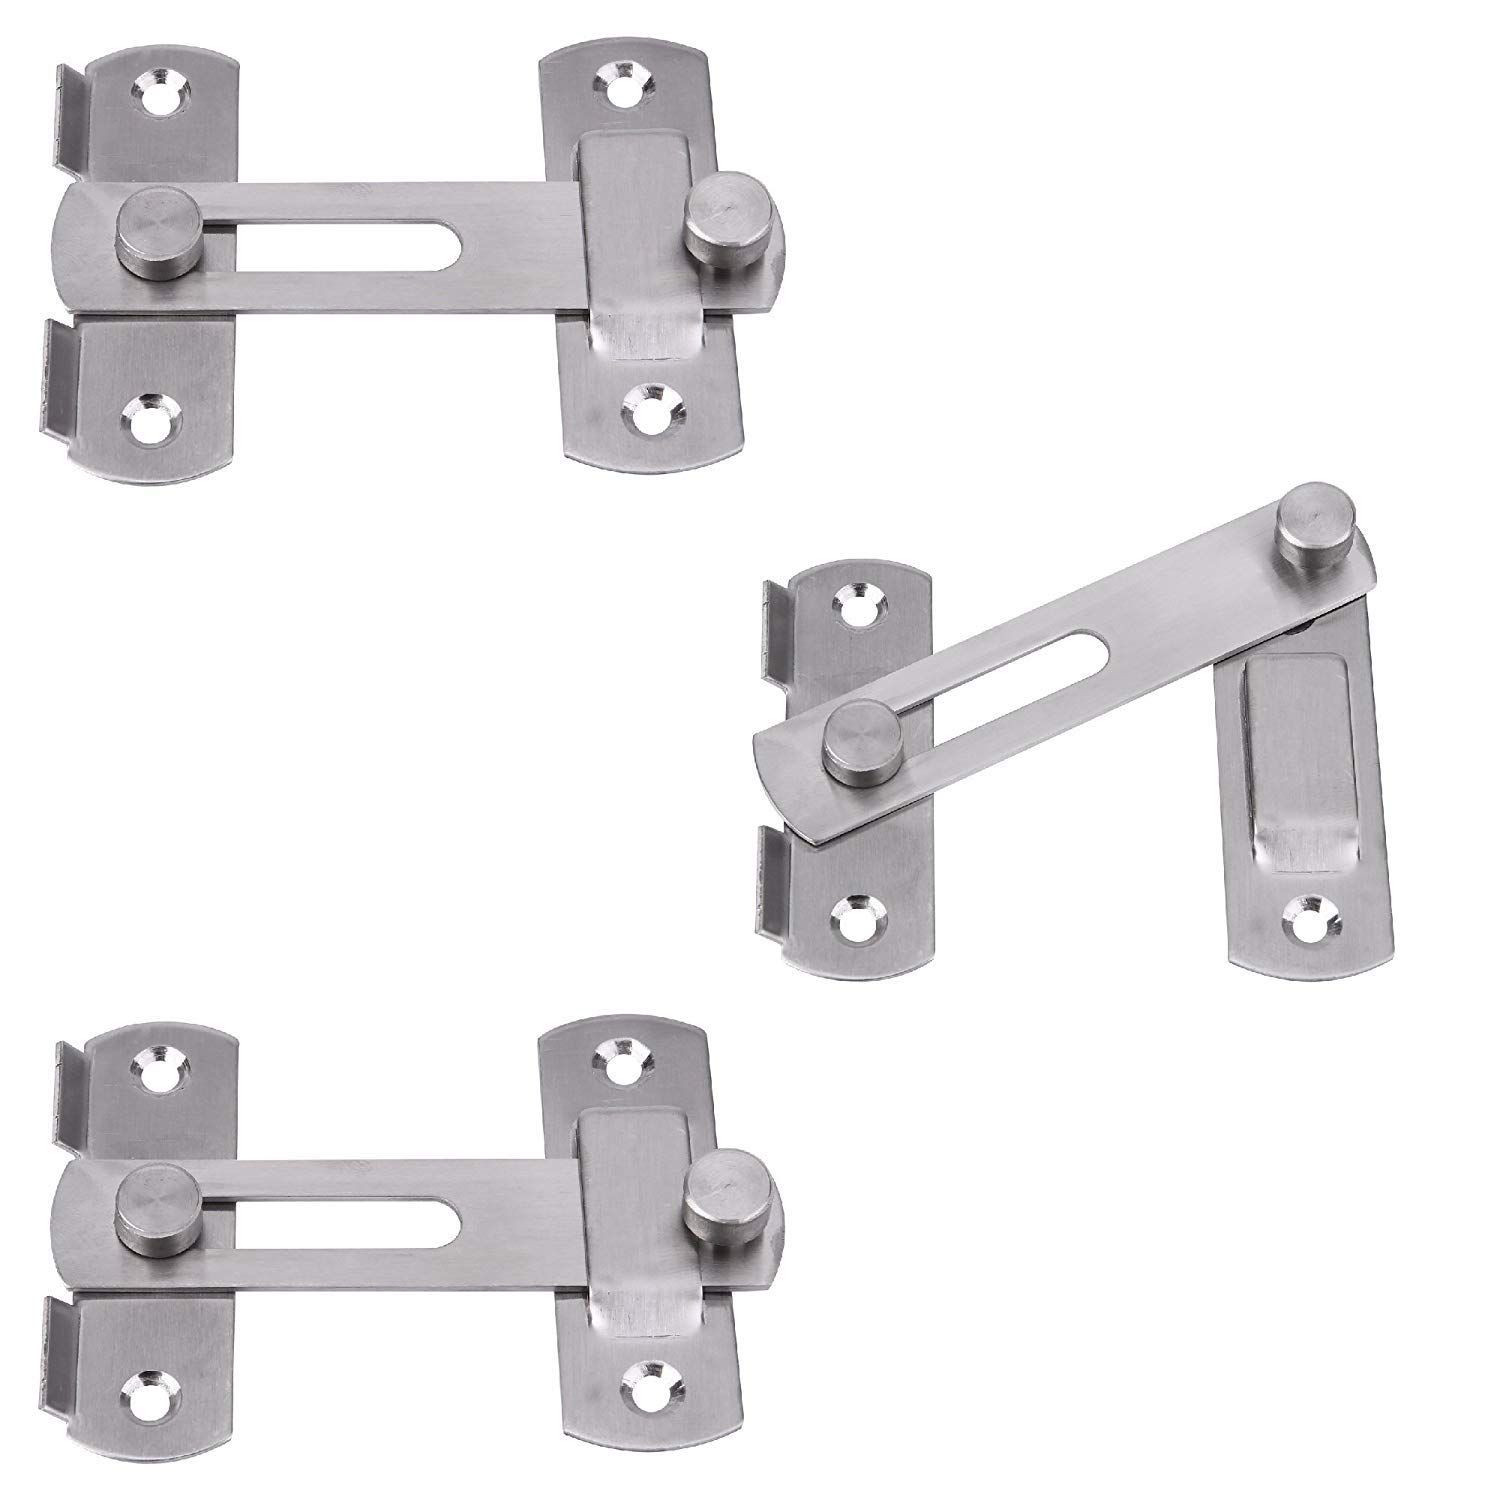 Creatyi 3 Pcs Stainless Steel Safety Door Latches,Window,Furniture,Pet Gate Lock